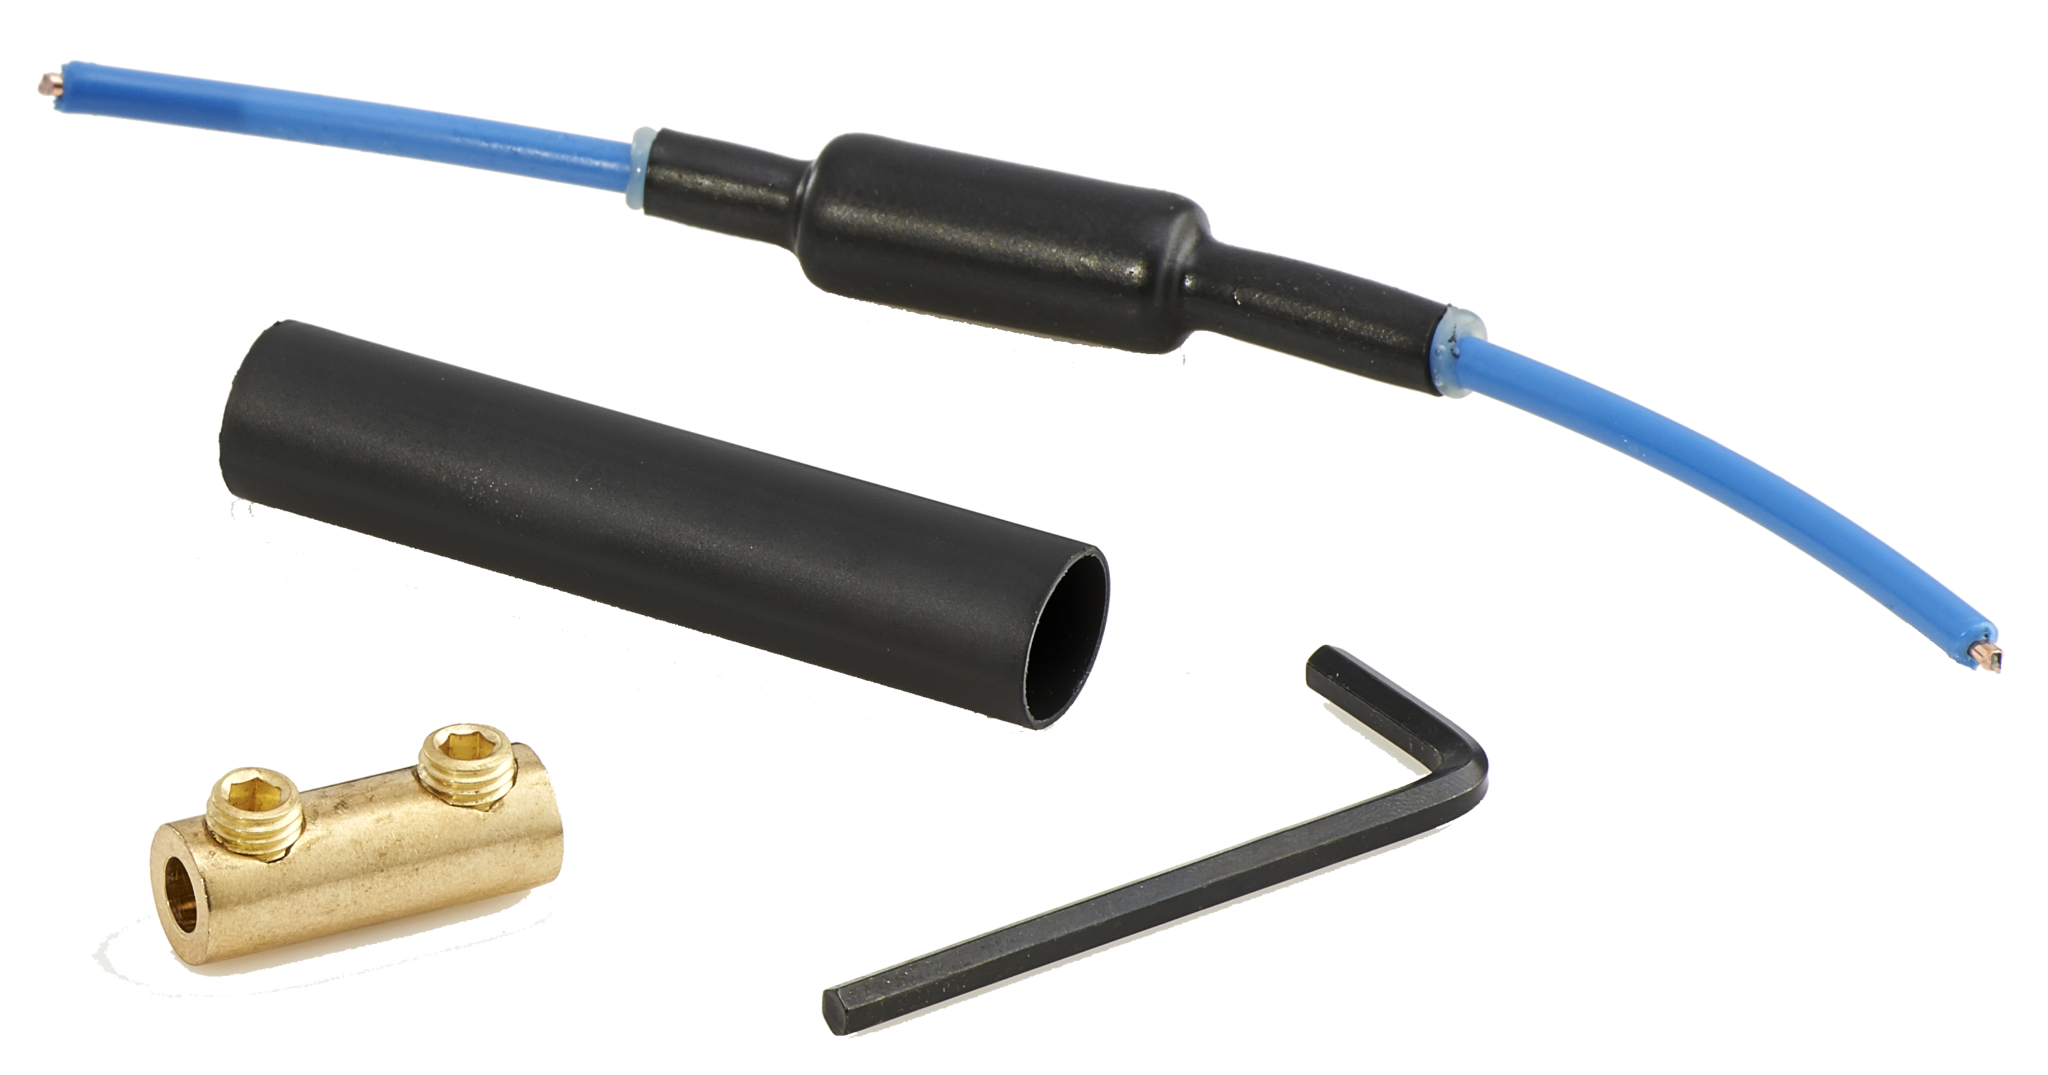 Pipe bursting tracer wire connectors